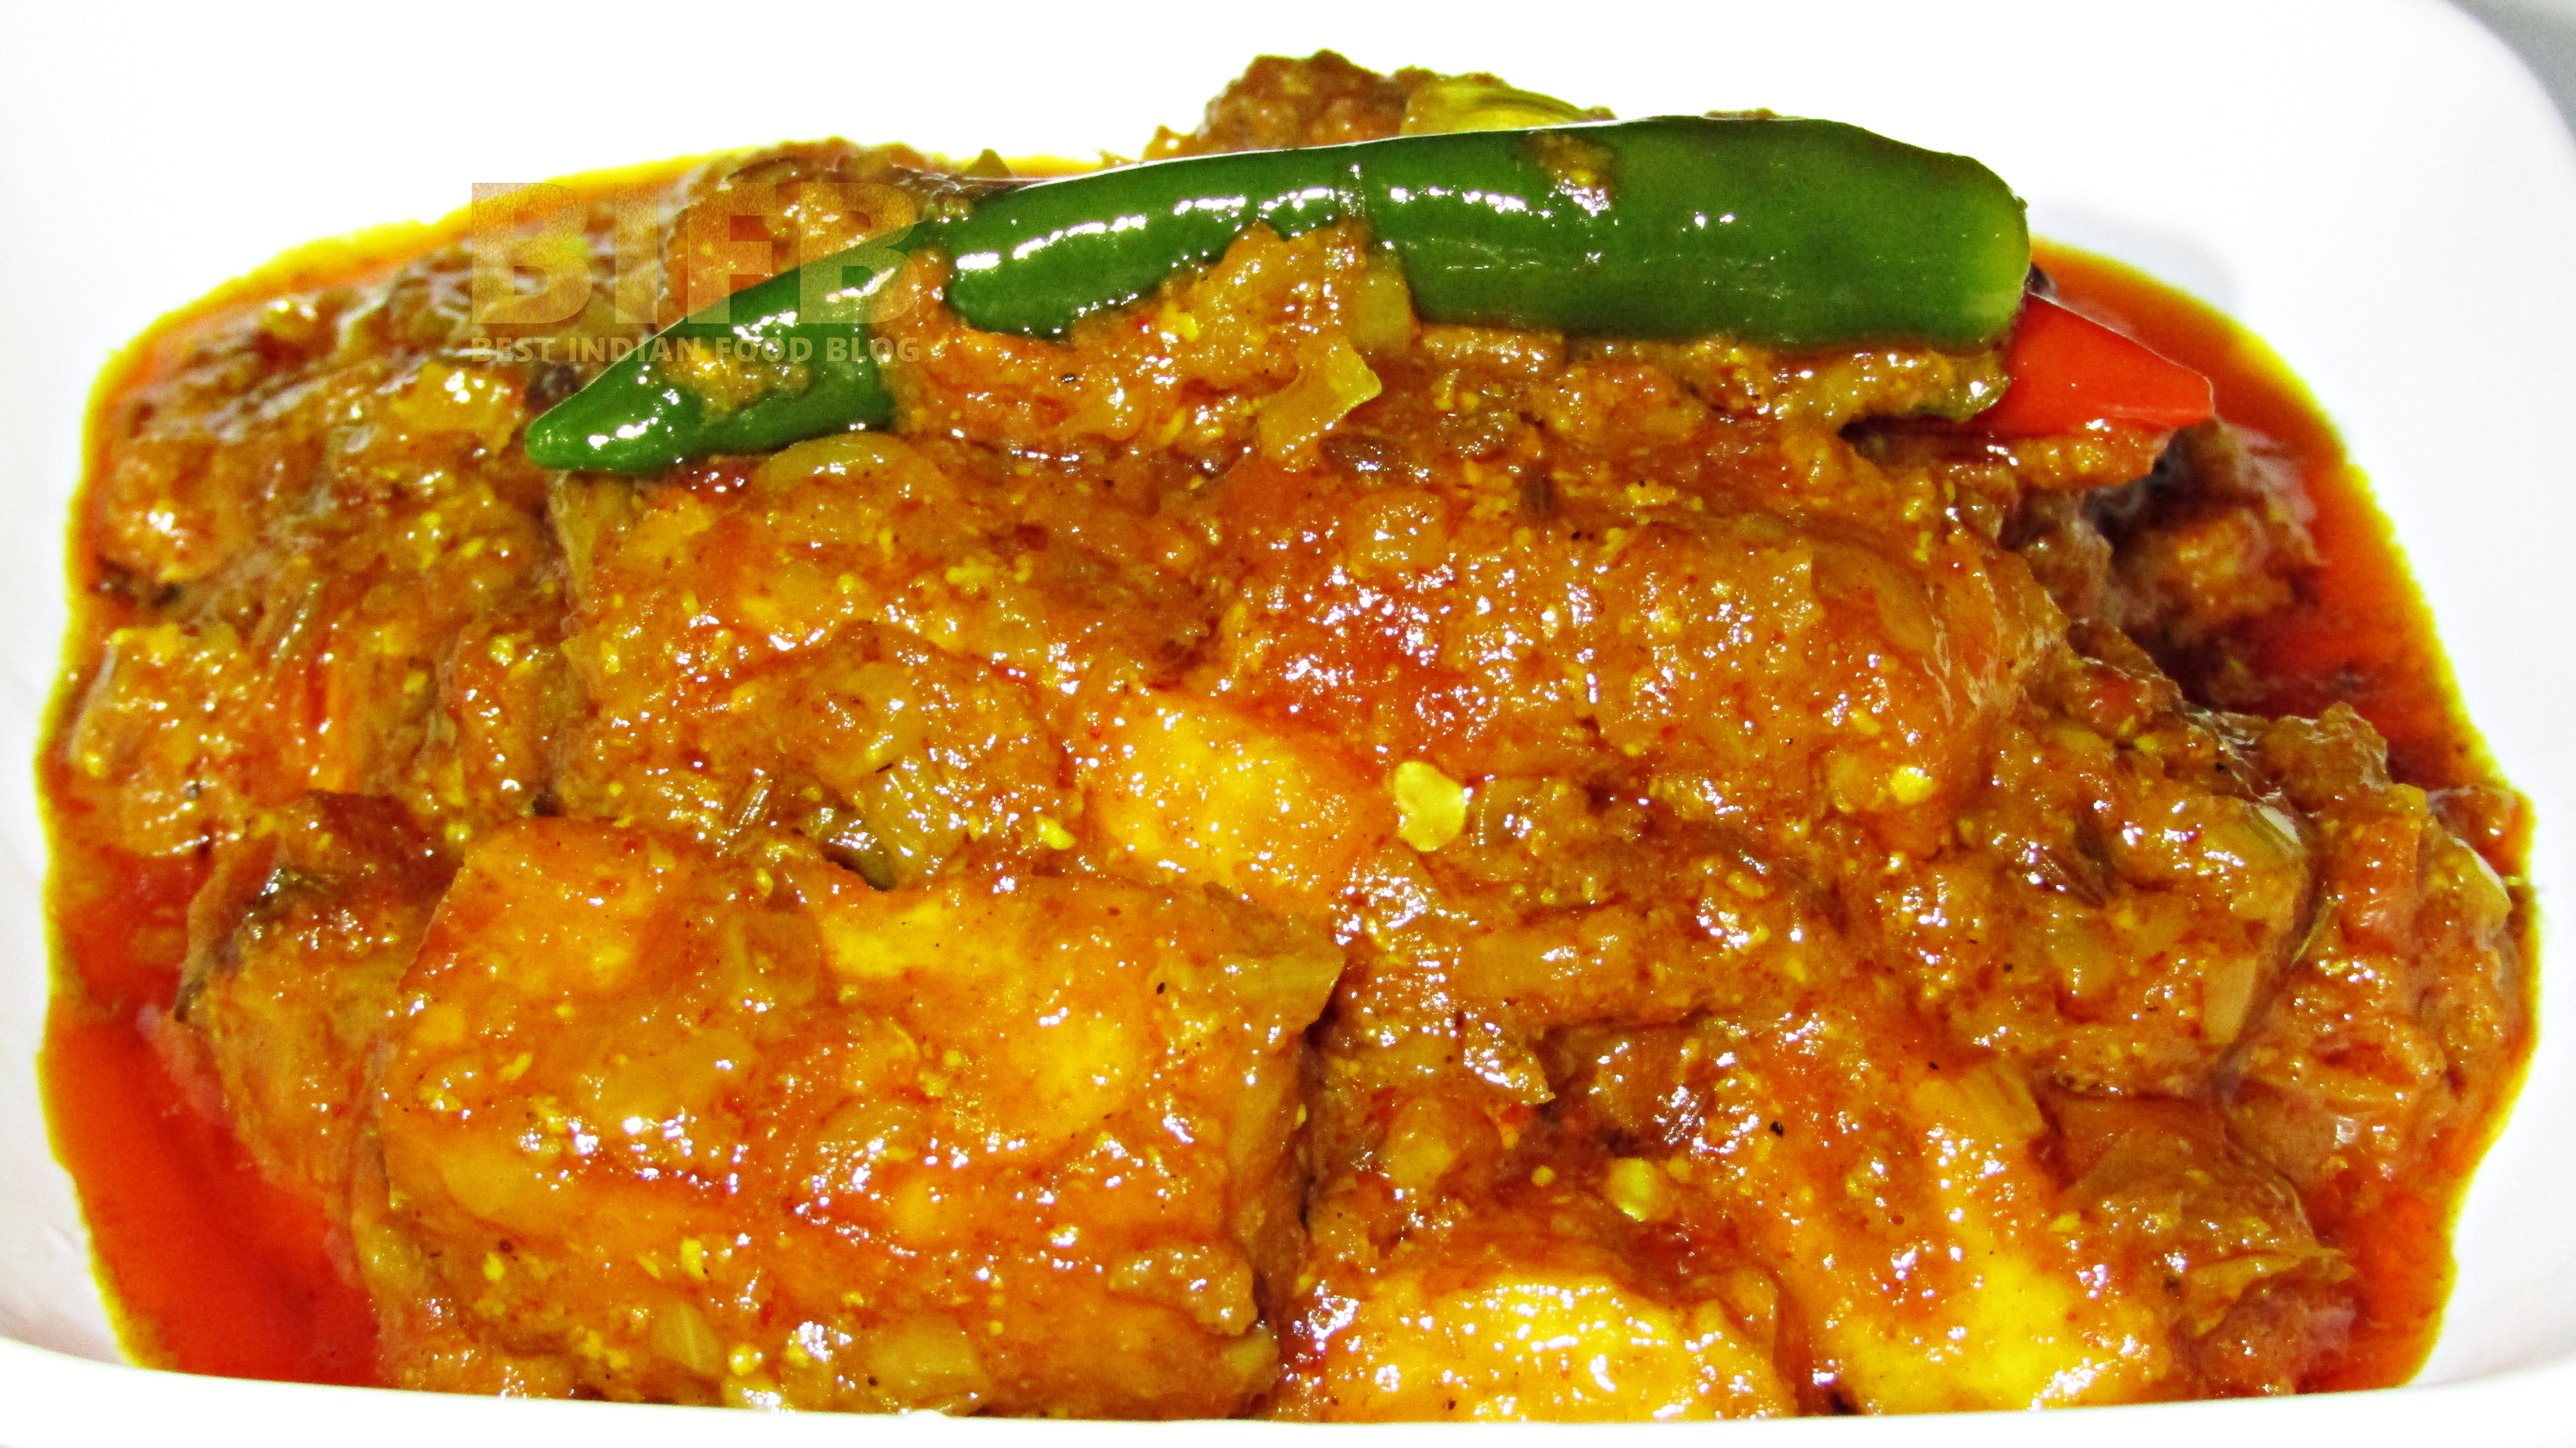 Paneer Masala From Punjab India Best Indian Food Blog Cottage Cheese Recipe Best Indian Food Blog